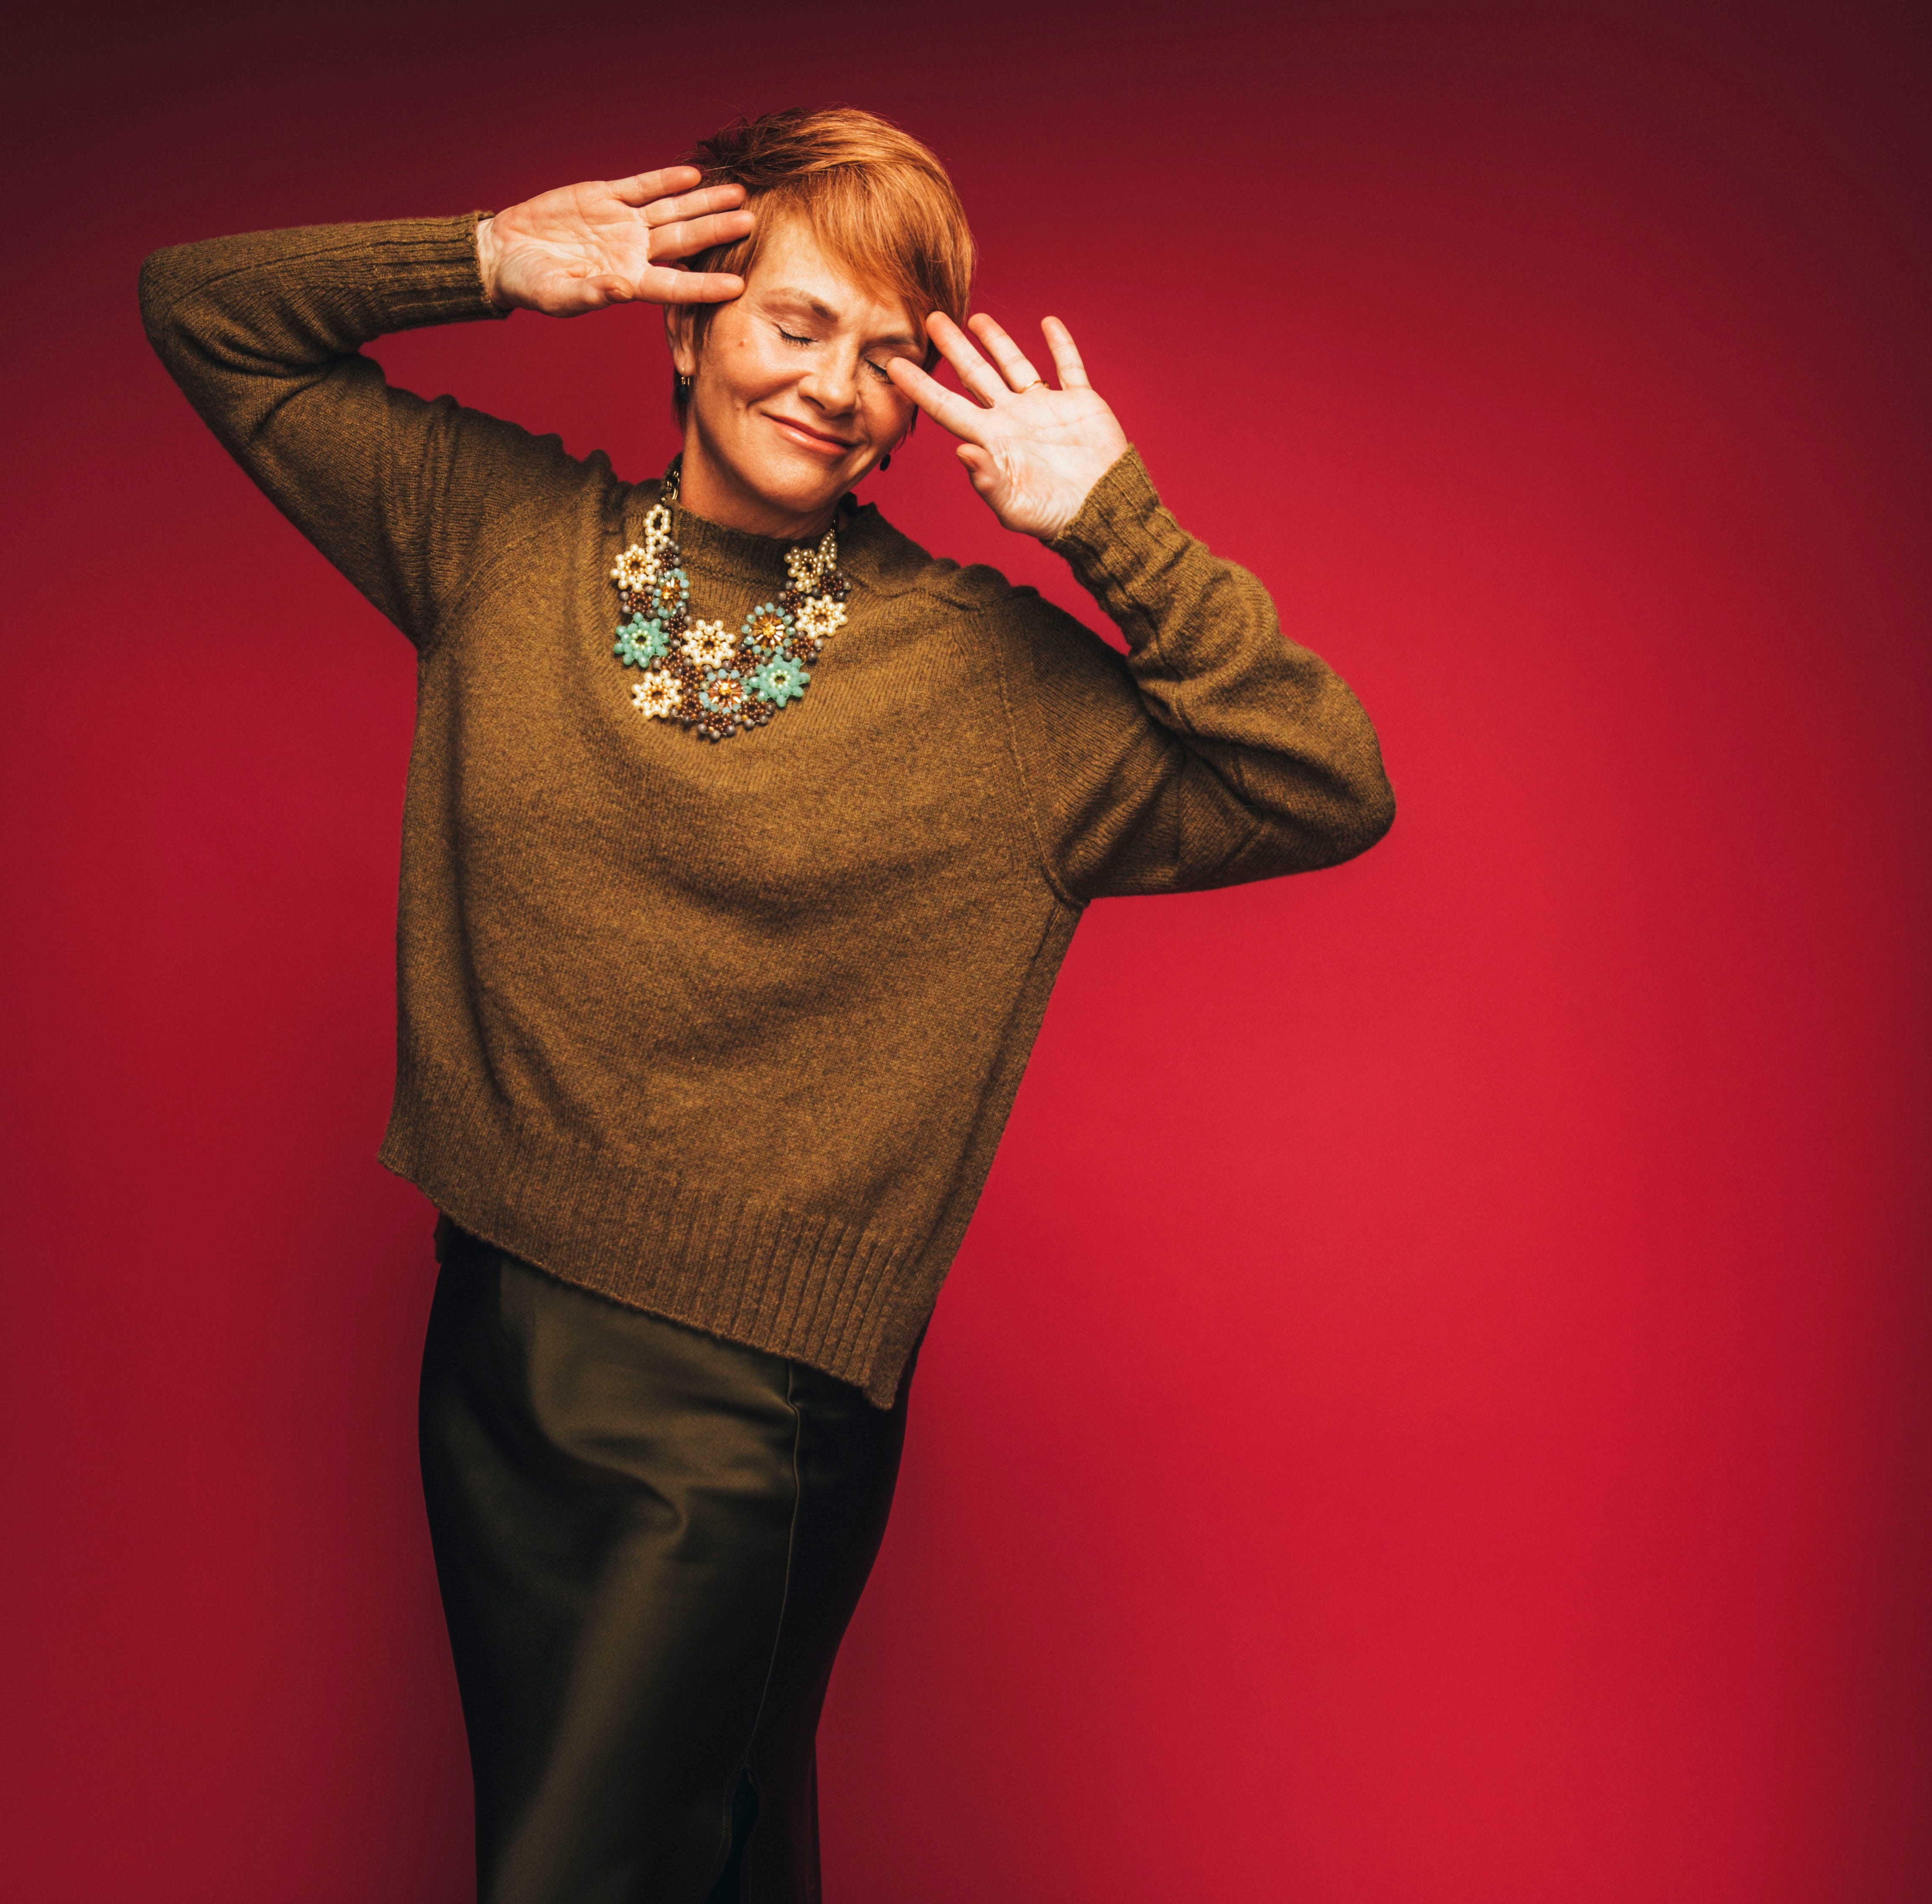 Shawn Colvin on The Band, influences, before Woodstock show